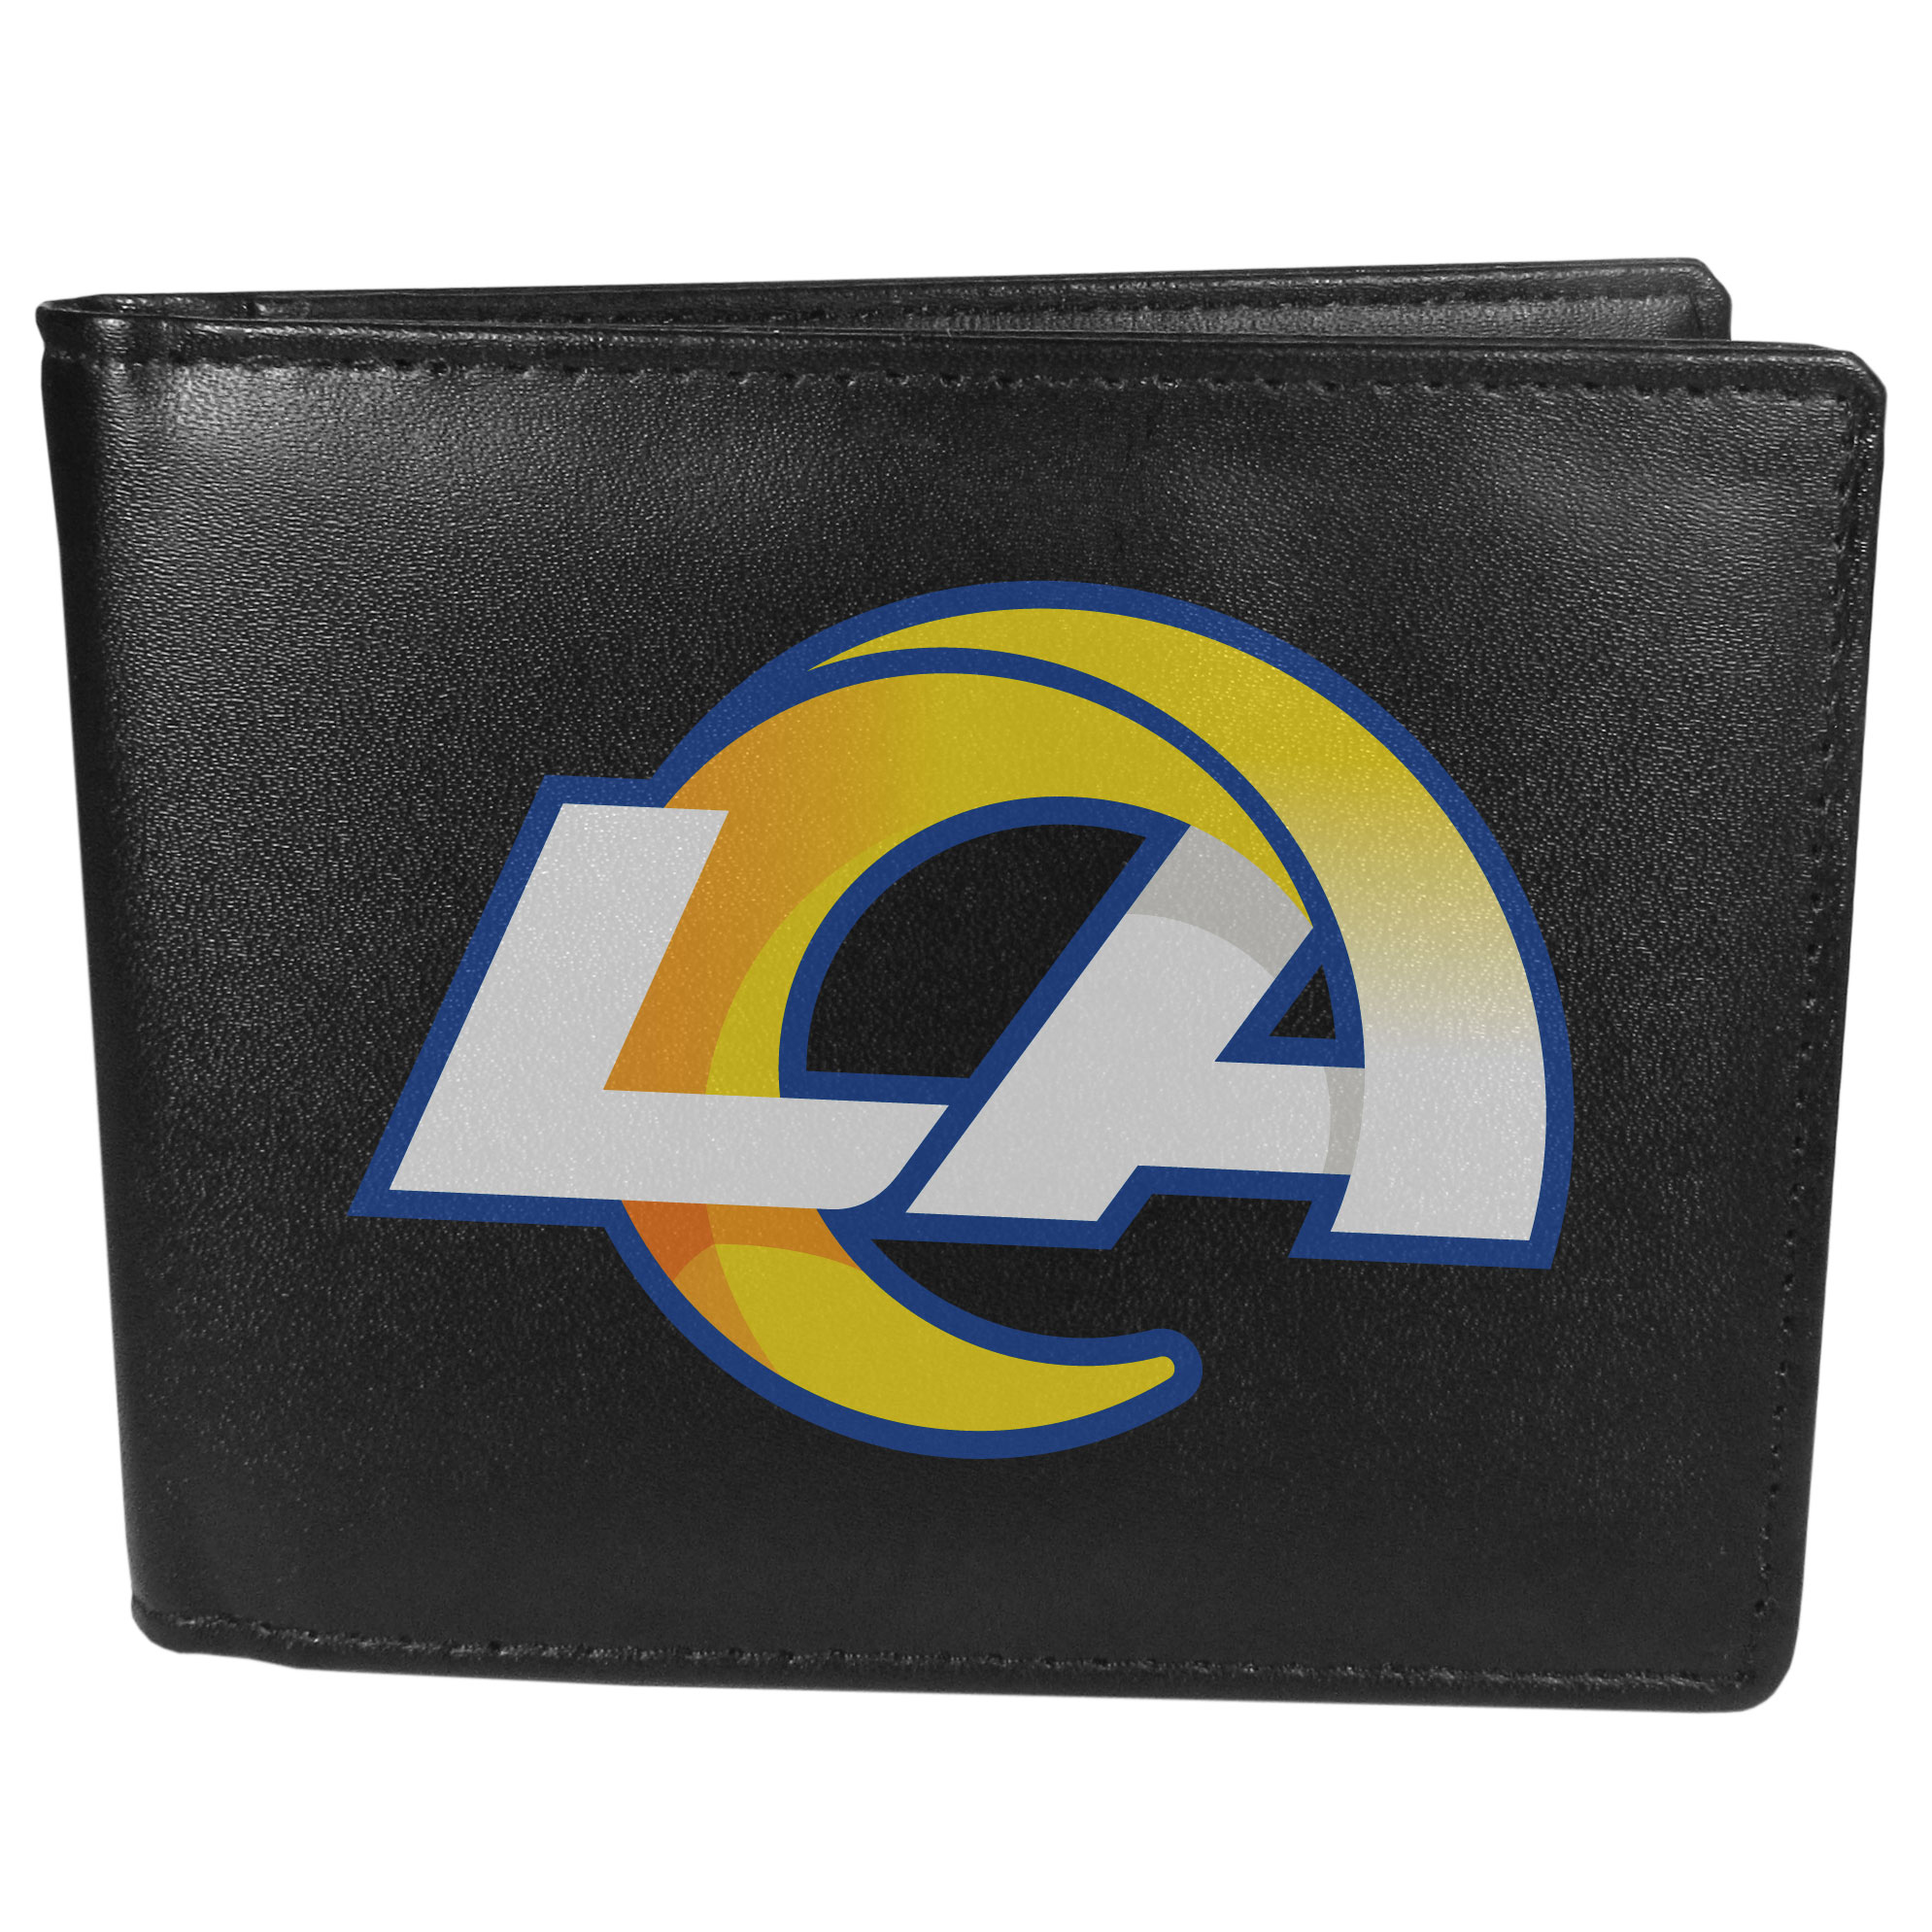 Leather Bi-fold Wallets, Large Logo